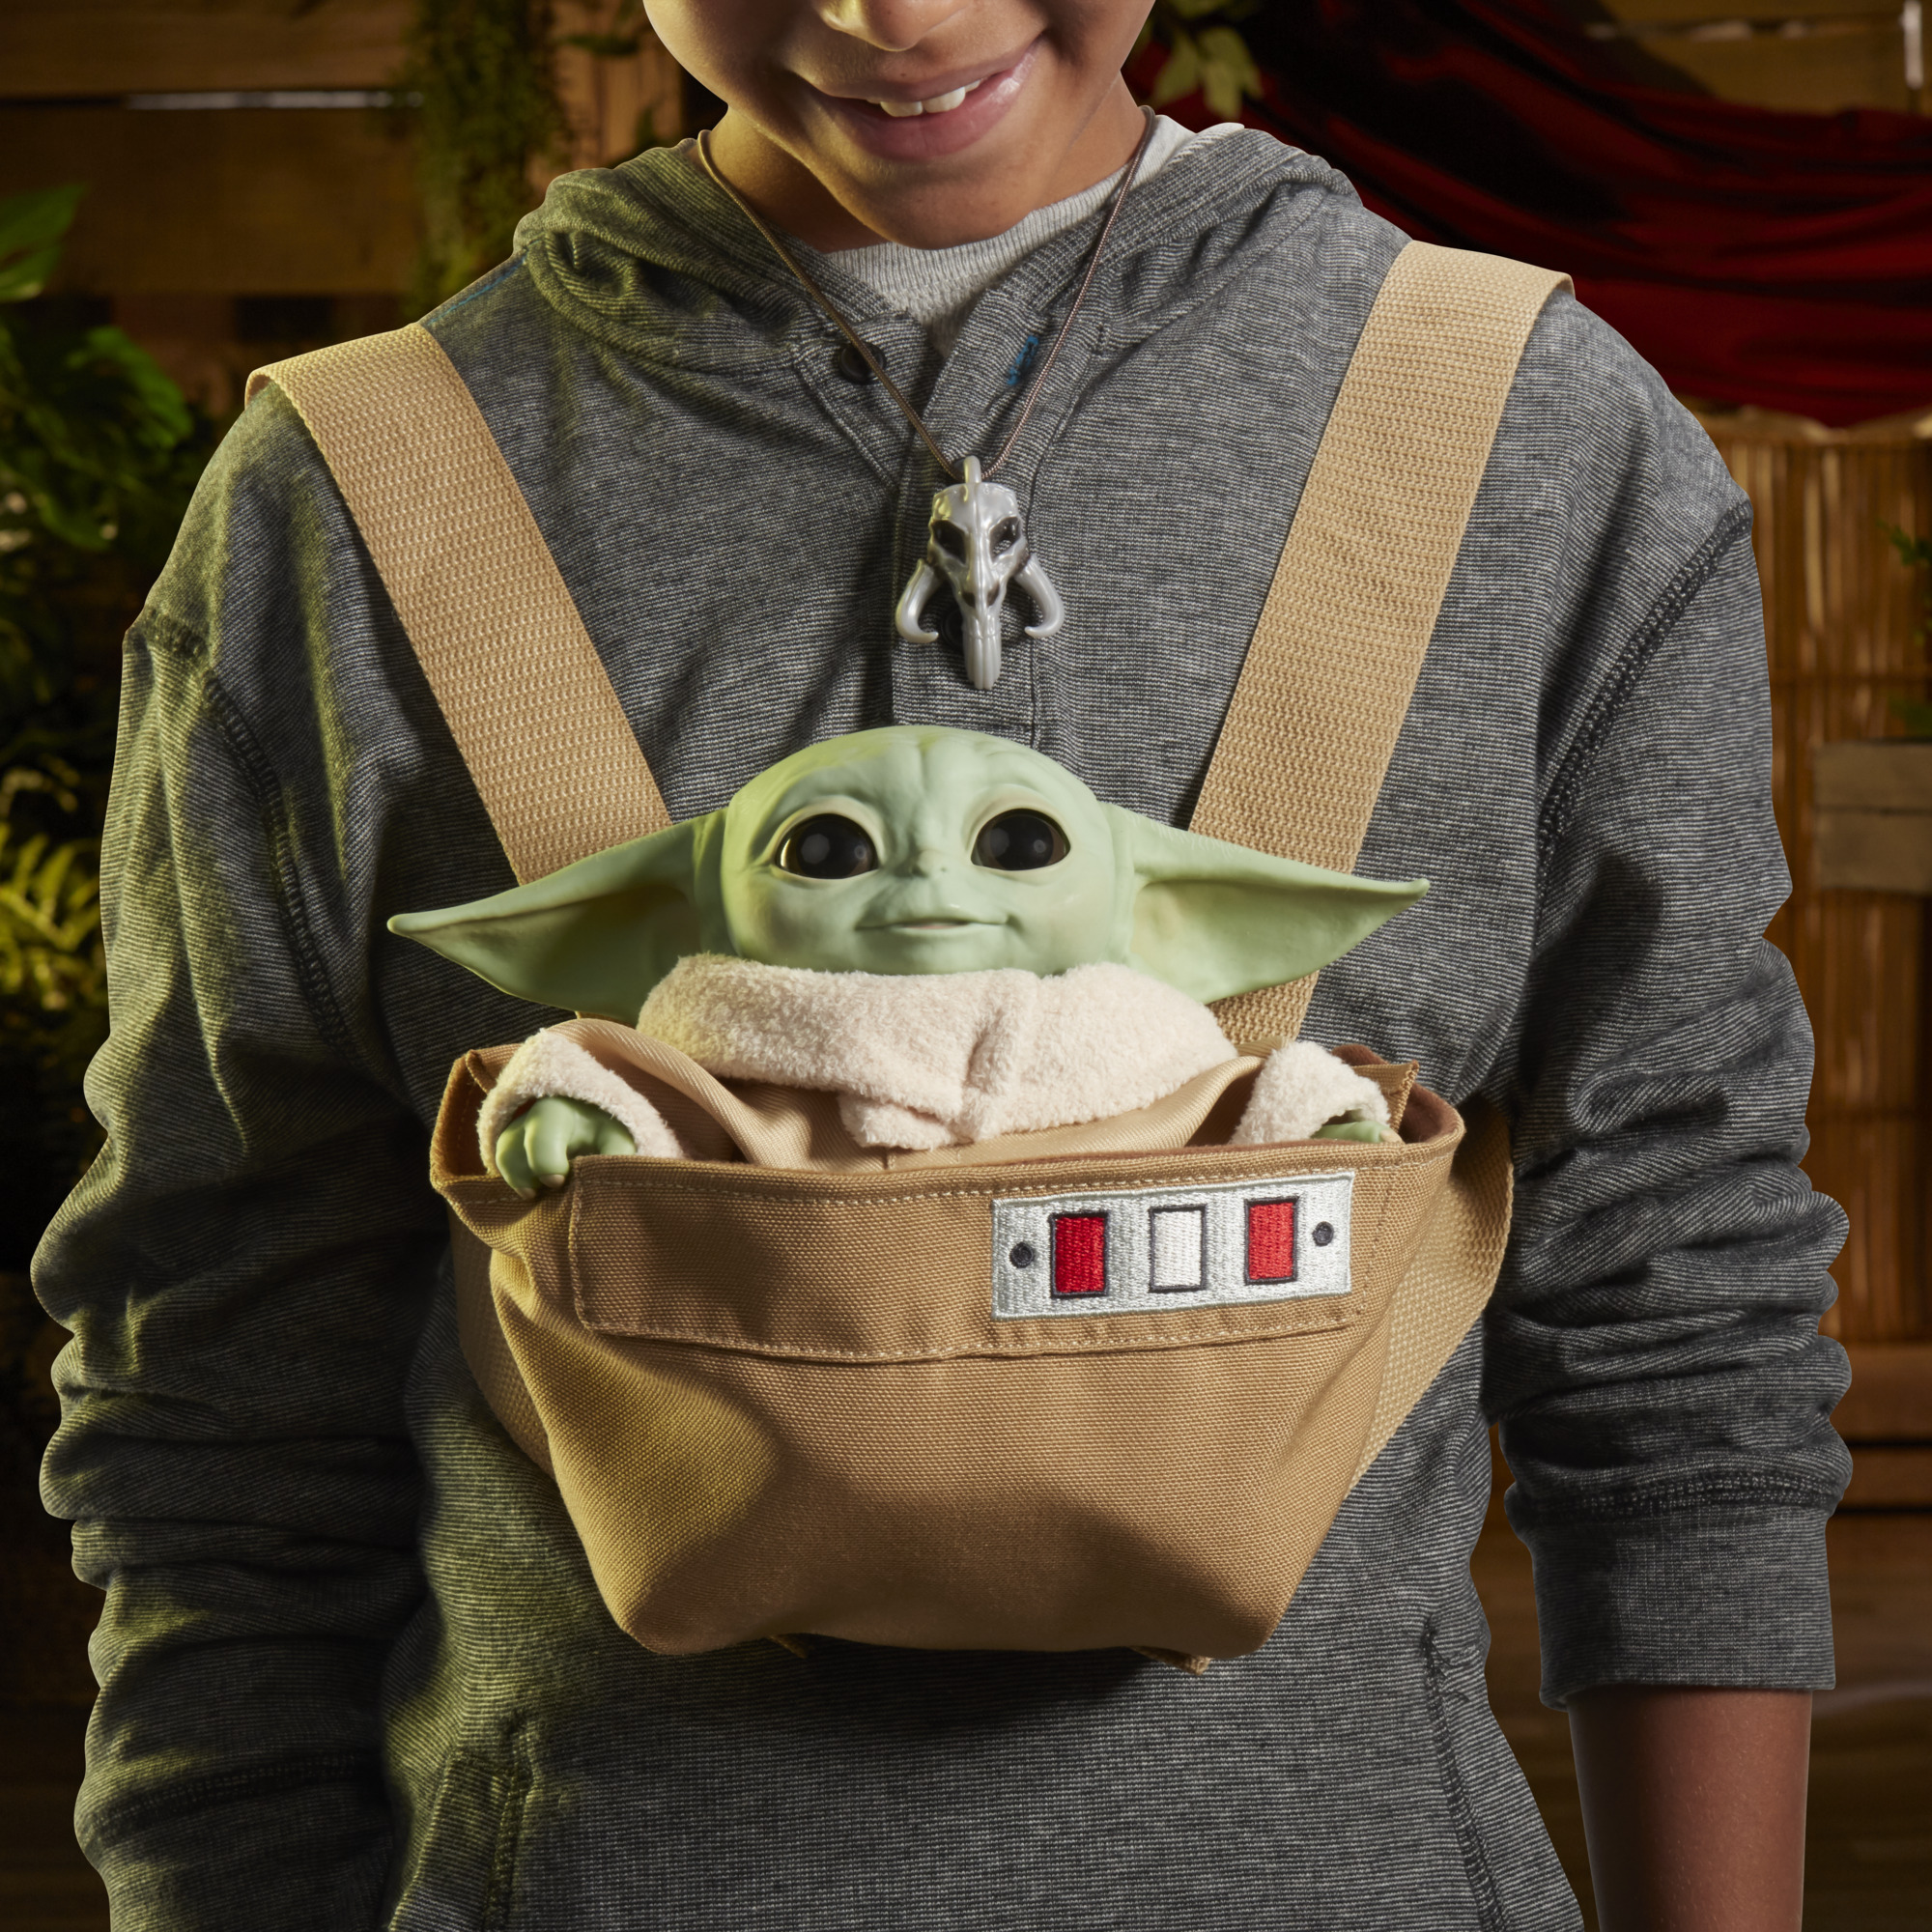 Hasbro's Baby Yoda animatronic toy is finally available to purchase 14